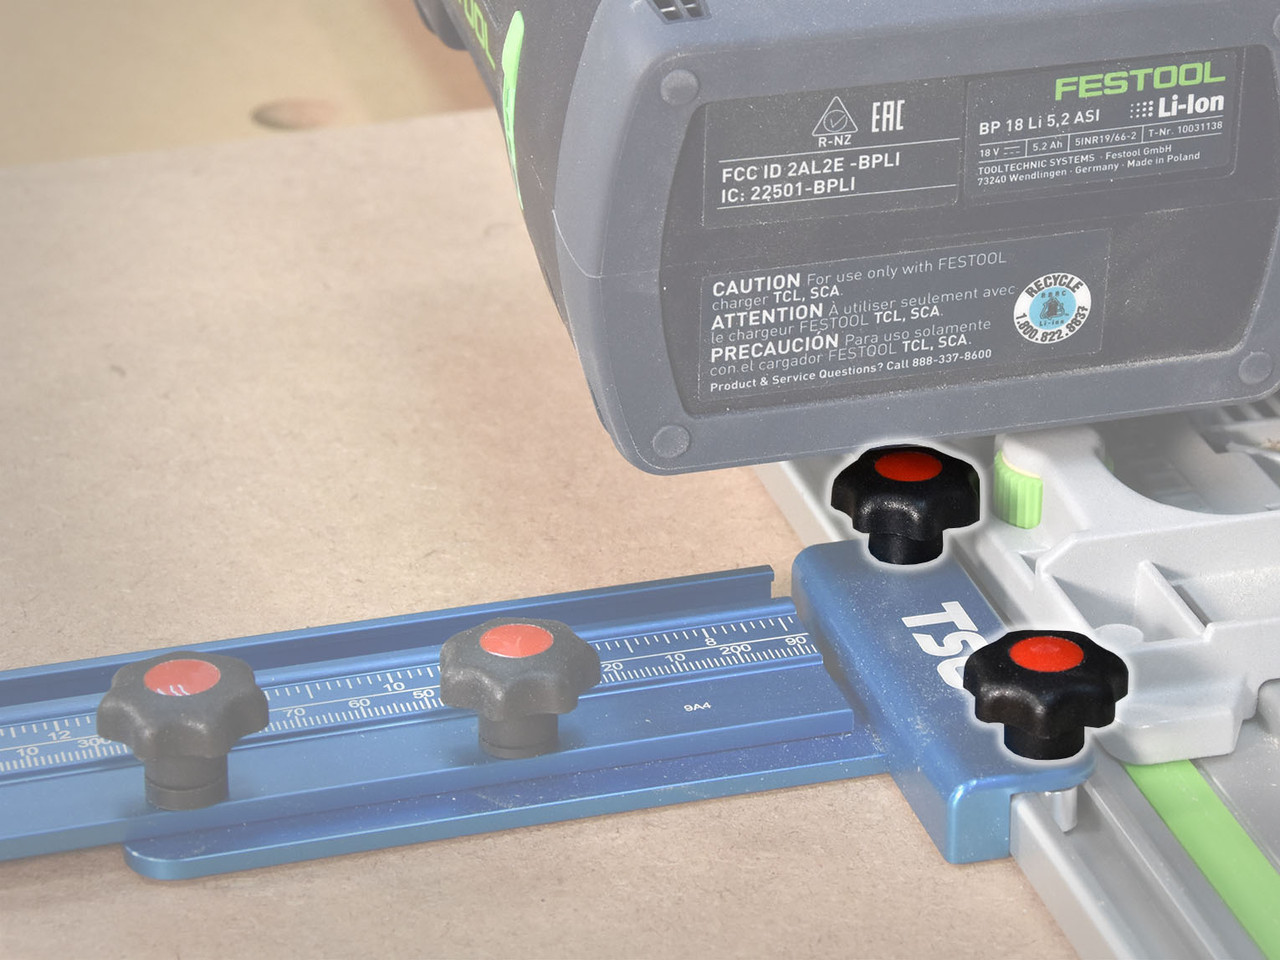 """The M5 Star Grip Knobs are short enough to avoid interference with the track saw motor housing and battery, so long as you don't need to cut more than 1.5"""" deep."""